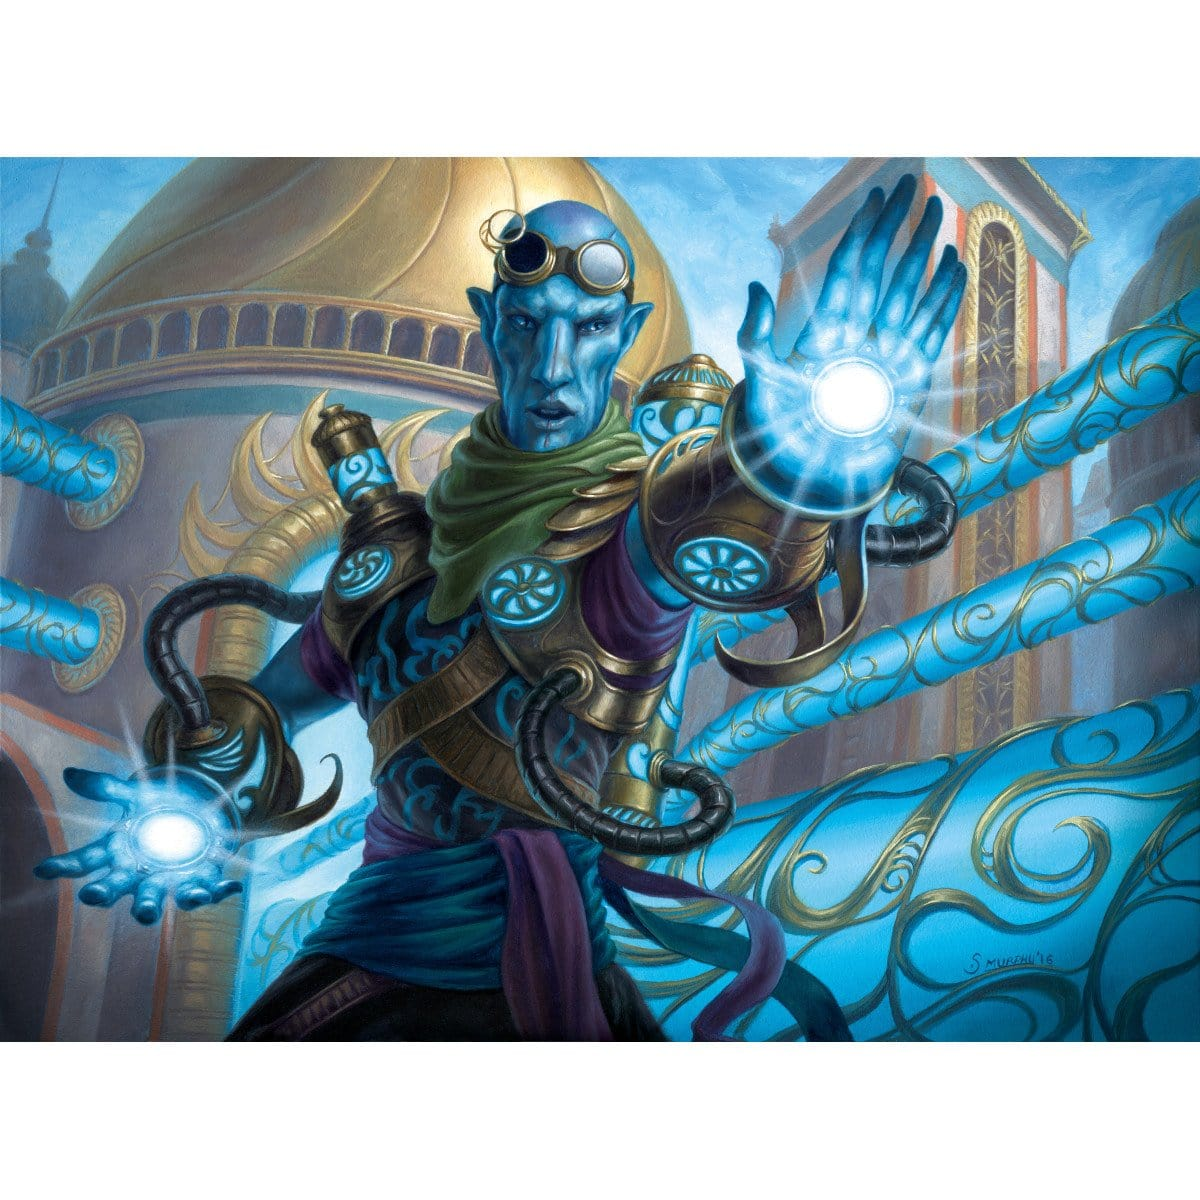 Dispersal Technician Print - Print - Original Magic Art - Accessories for Magic the Gathering and other card games